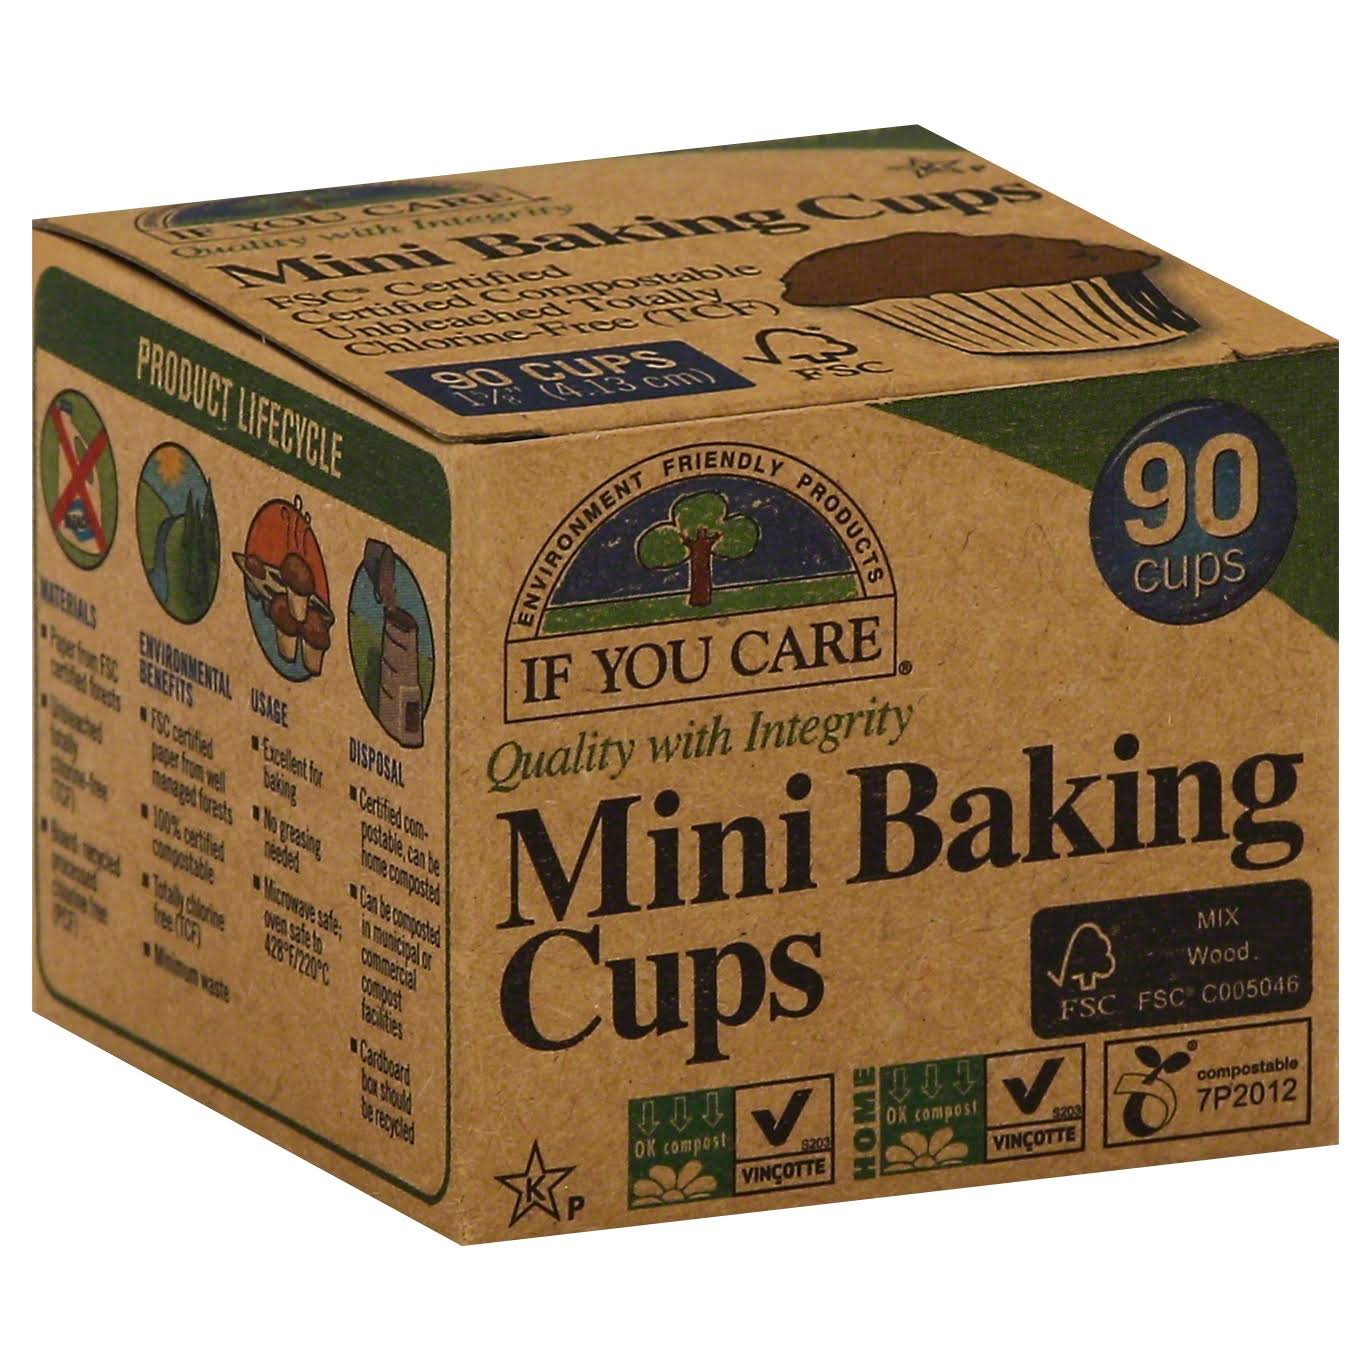 If You Care Mini Baking Cups - 90 Cups